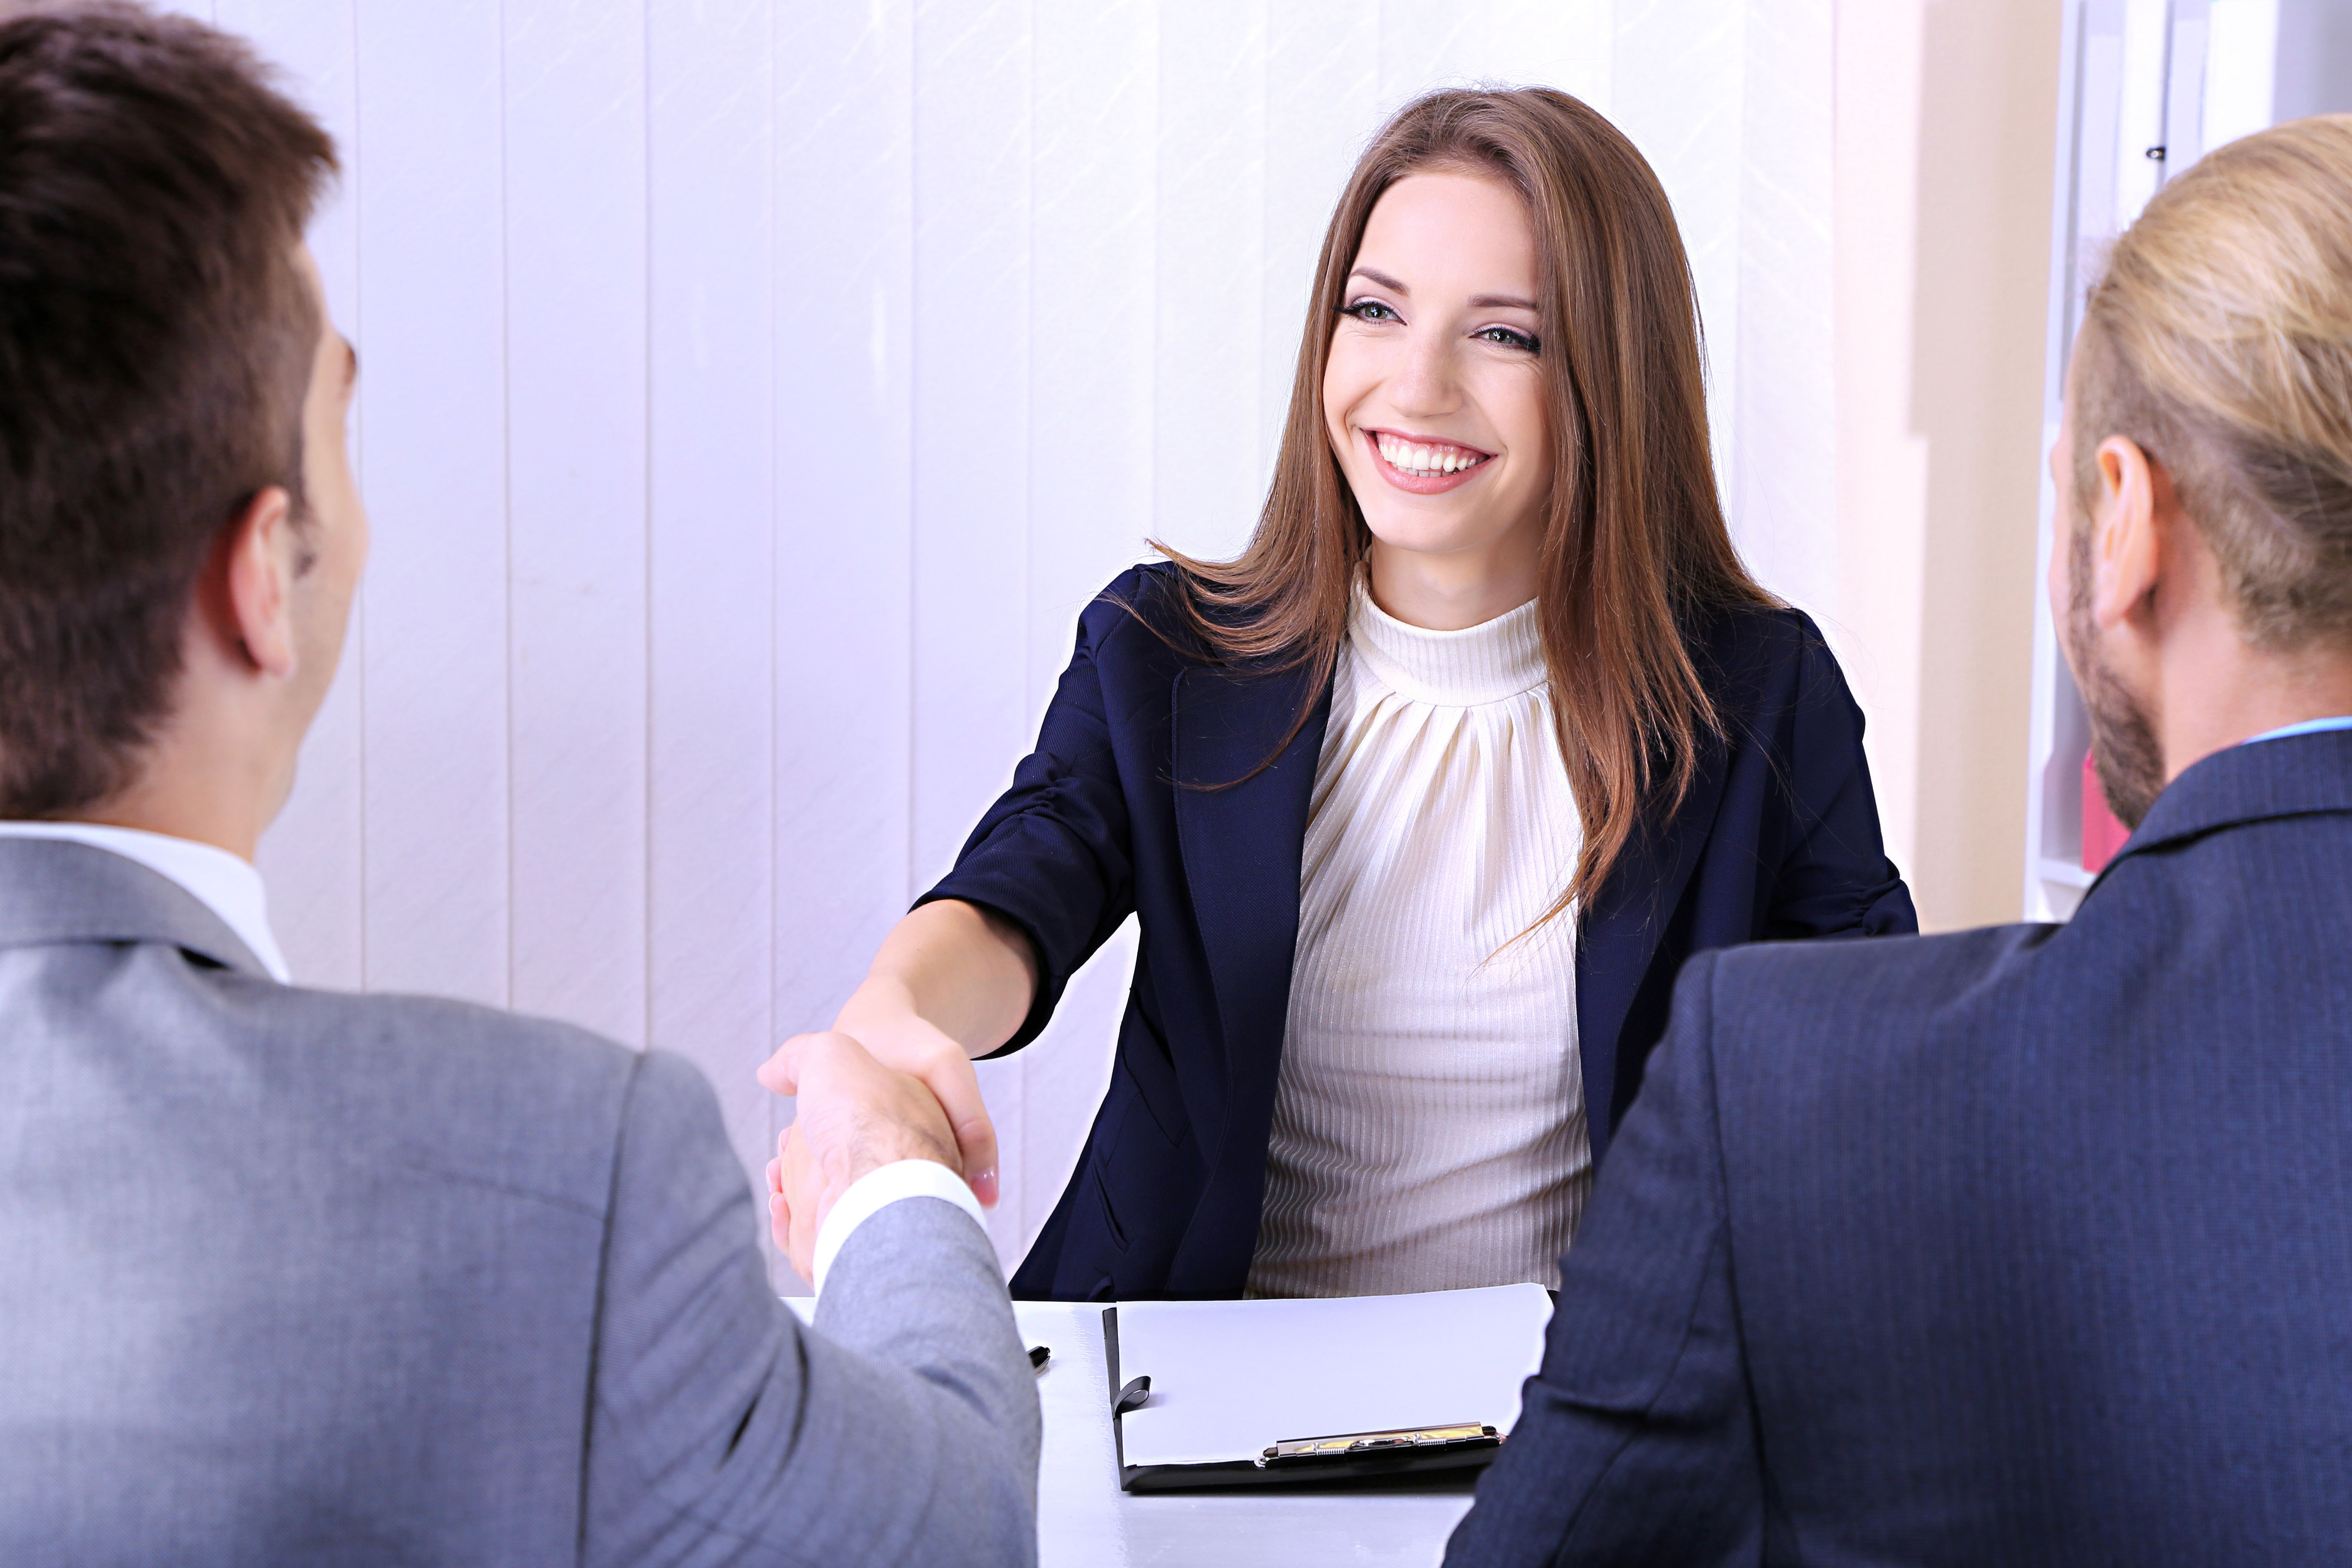 Hiring the best candidates 3 filters to add to your